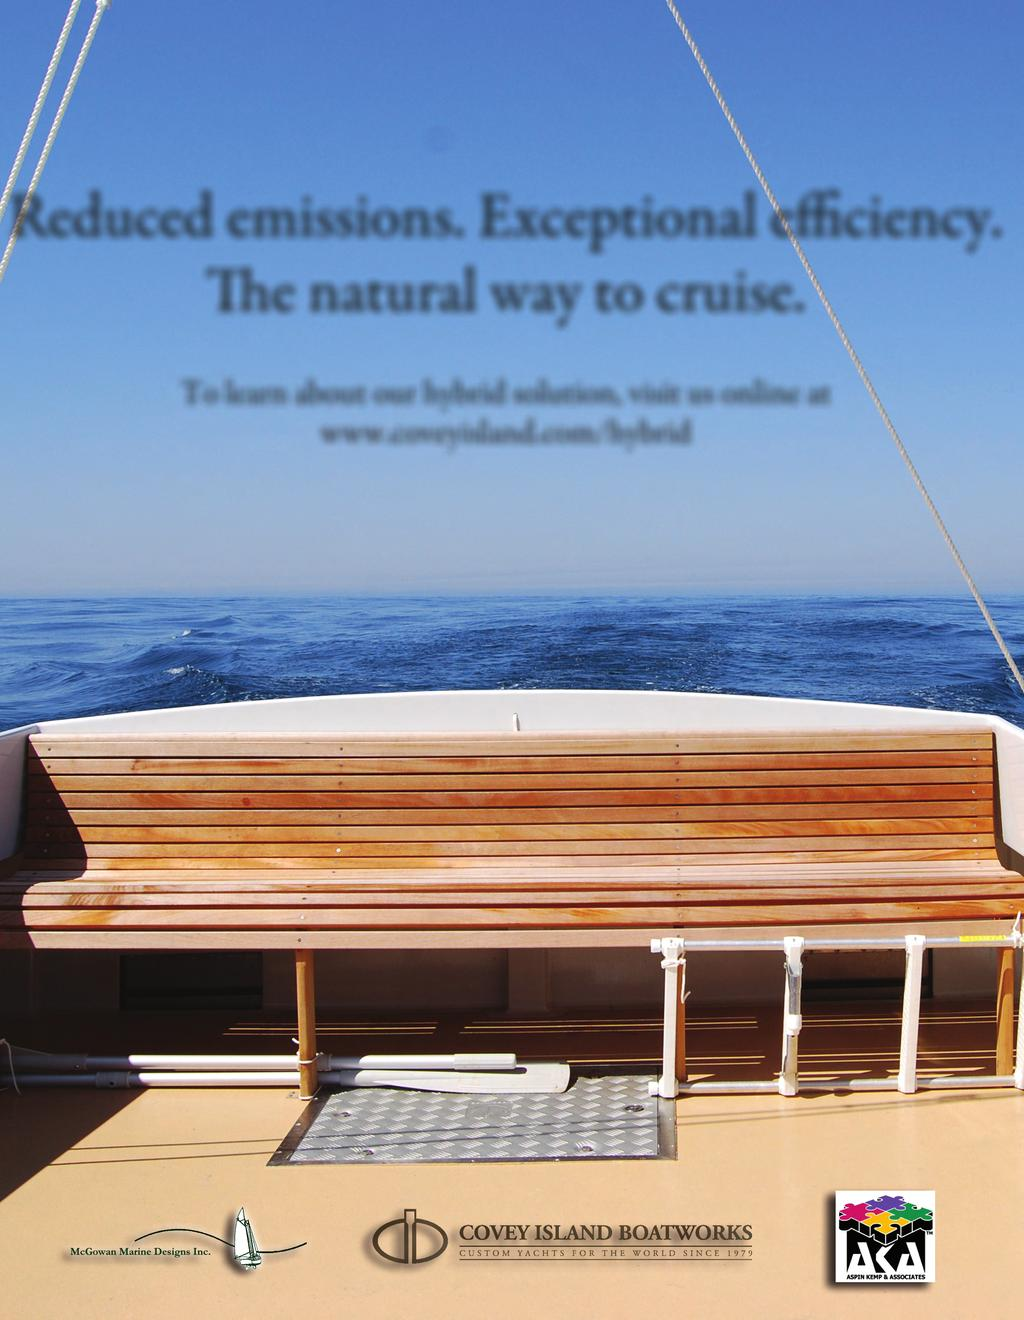 Reduced emissions. Exceptional efficiency. e natural way to cruise.